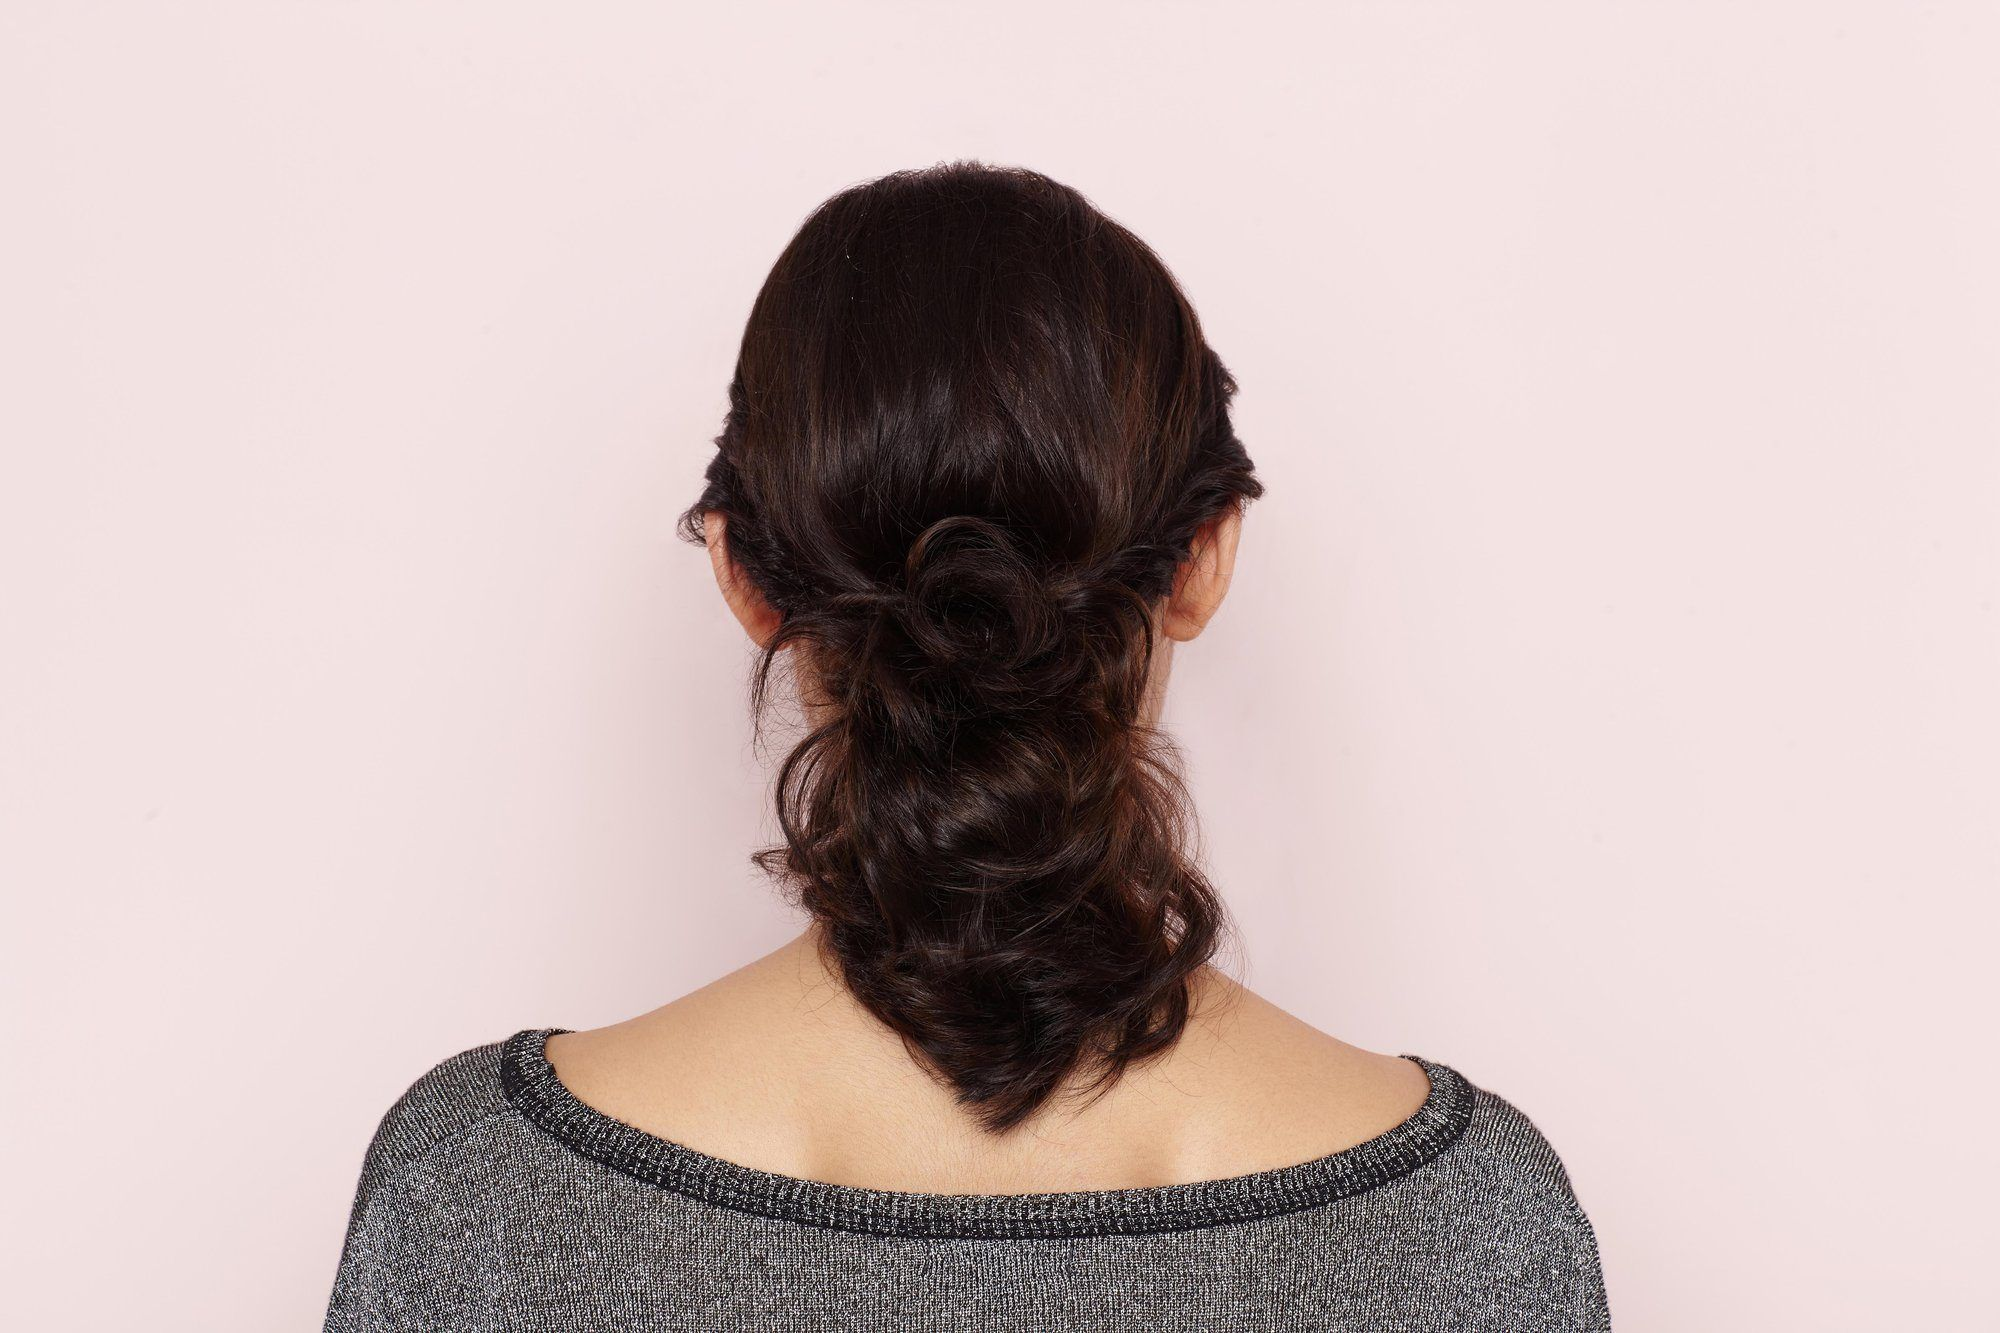 curling wand styles on a curly ponytail hairstyle